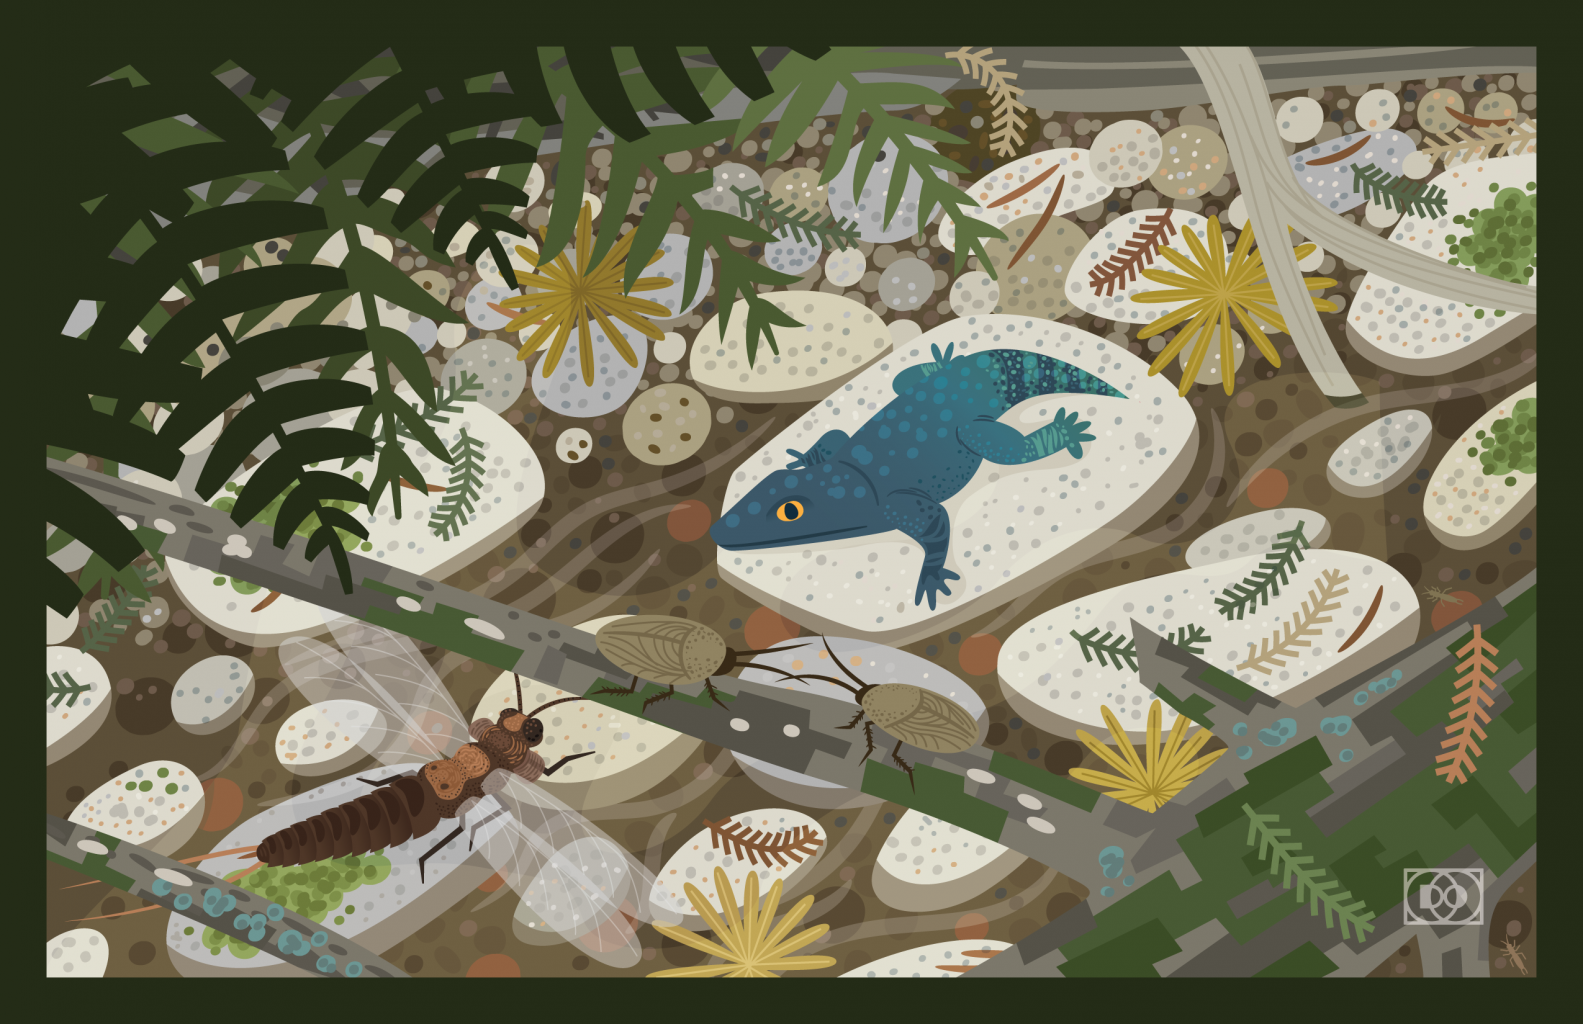 Creekbed scene in Permian Germany featuring a blue Tambachia temnospondyl and palaeodictyopterid insect